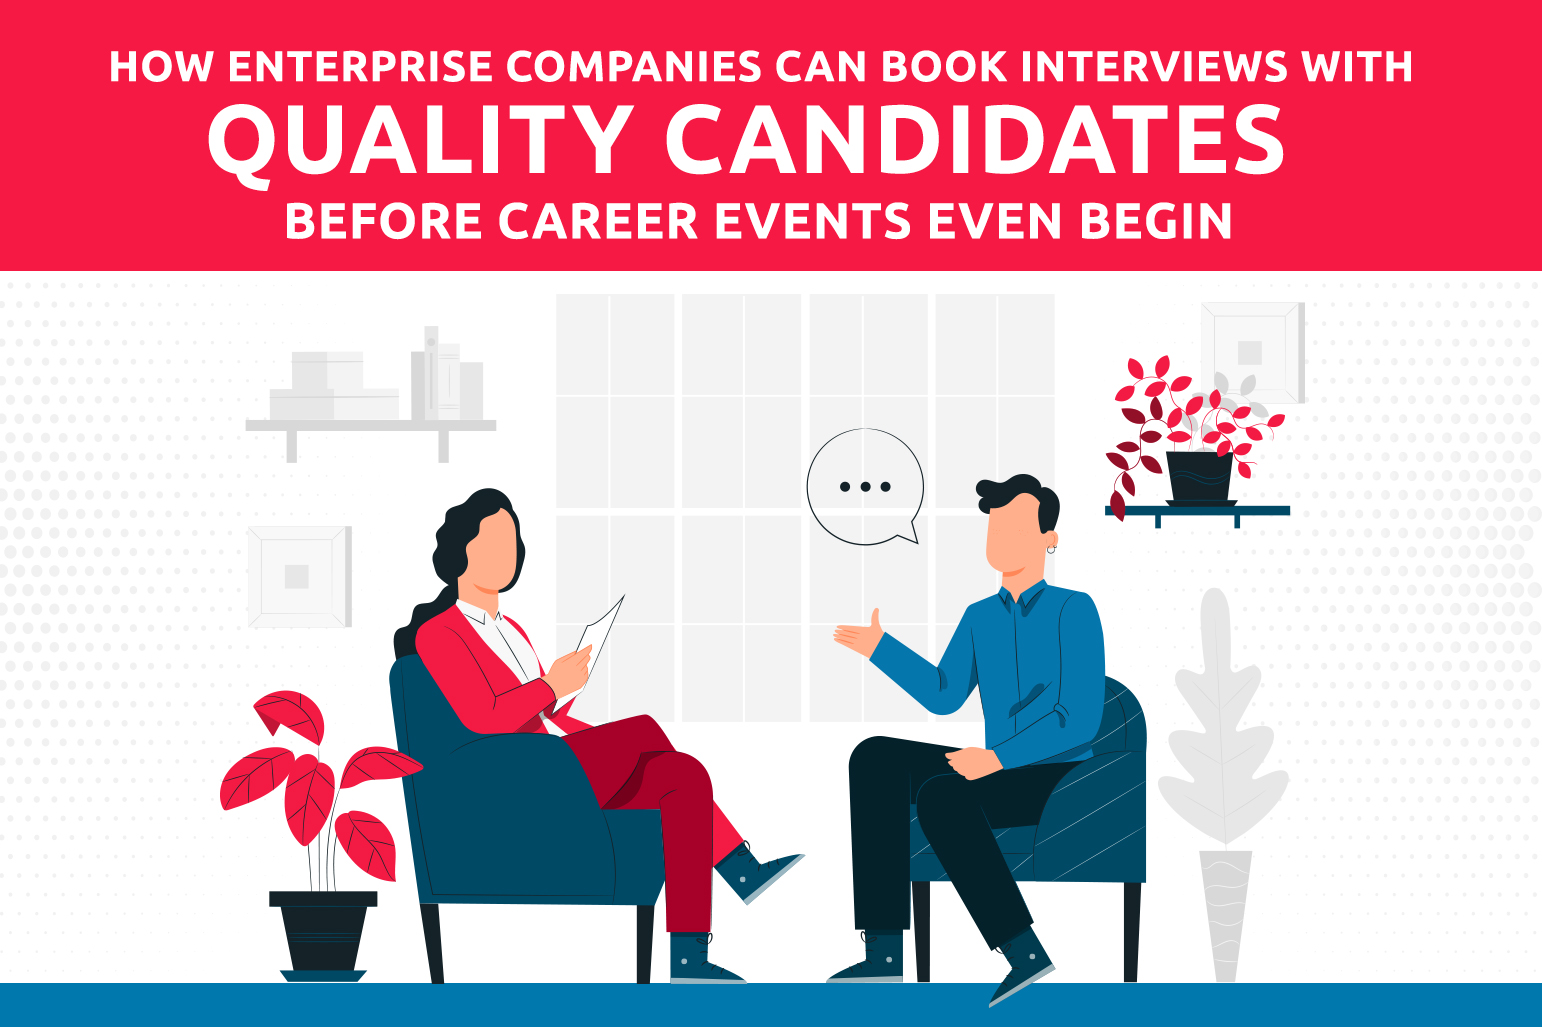 How Enterprise Companies Can Book Interviews With Quality Candidates—Before Career Events Even Begin